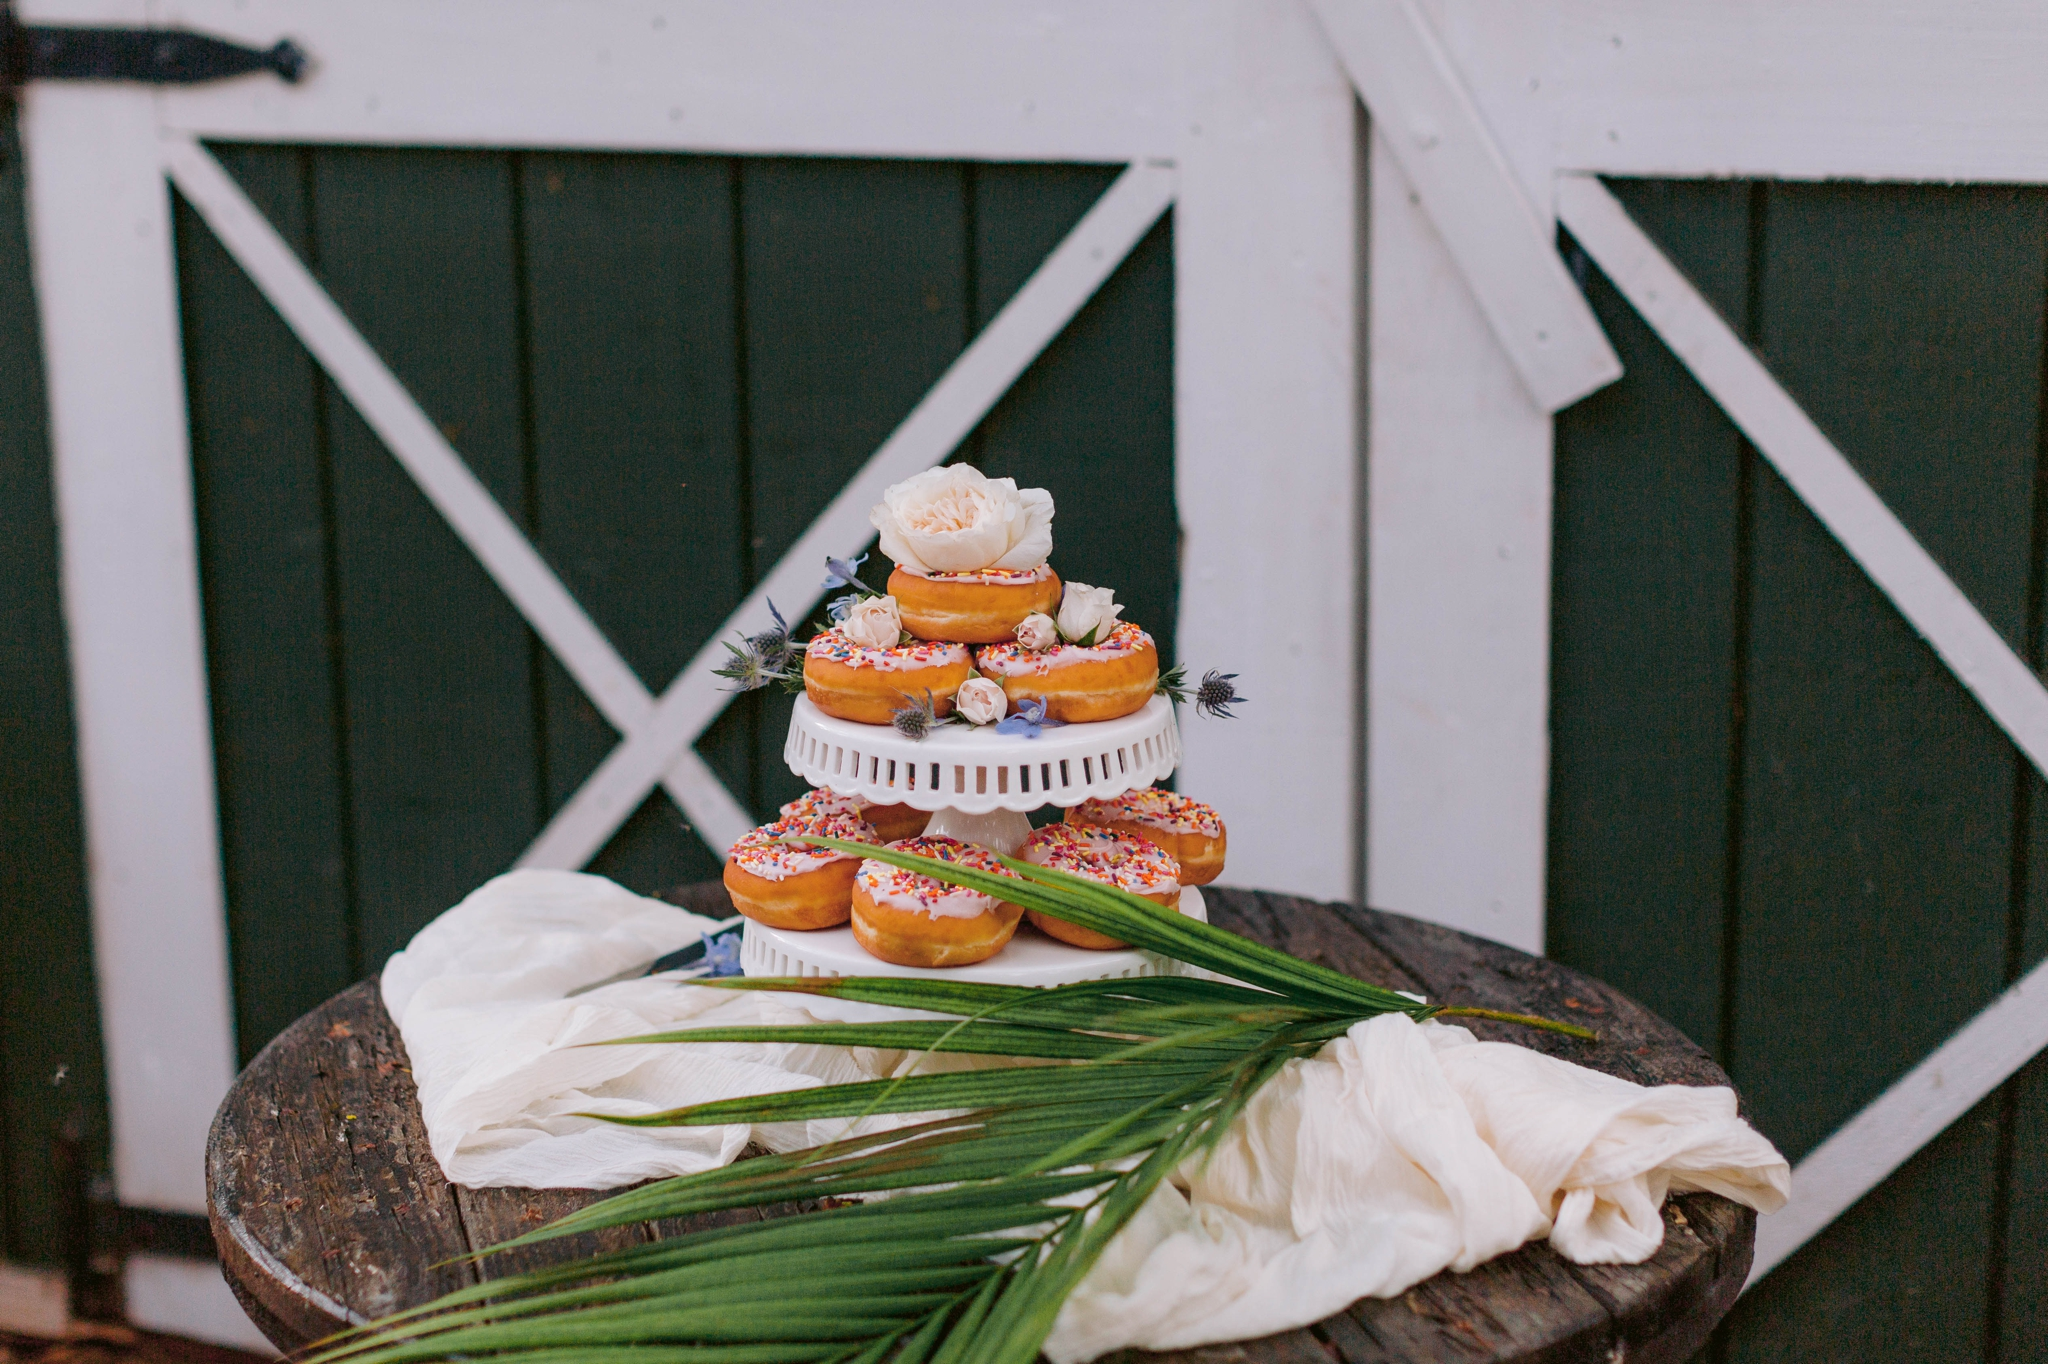 Donuts as the wedding cake - Ana + Elijah - Wedding at Loulu Palm in Haleiwa, HI - Oahu Hawaii Wedding Photographer - #hawaiiweddingphotographer #oahuweddings #hawaiiweddings